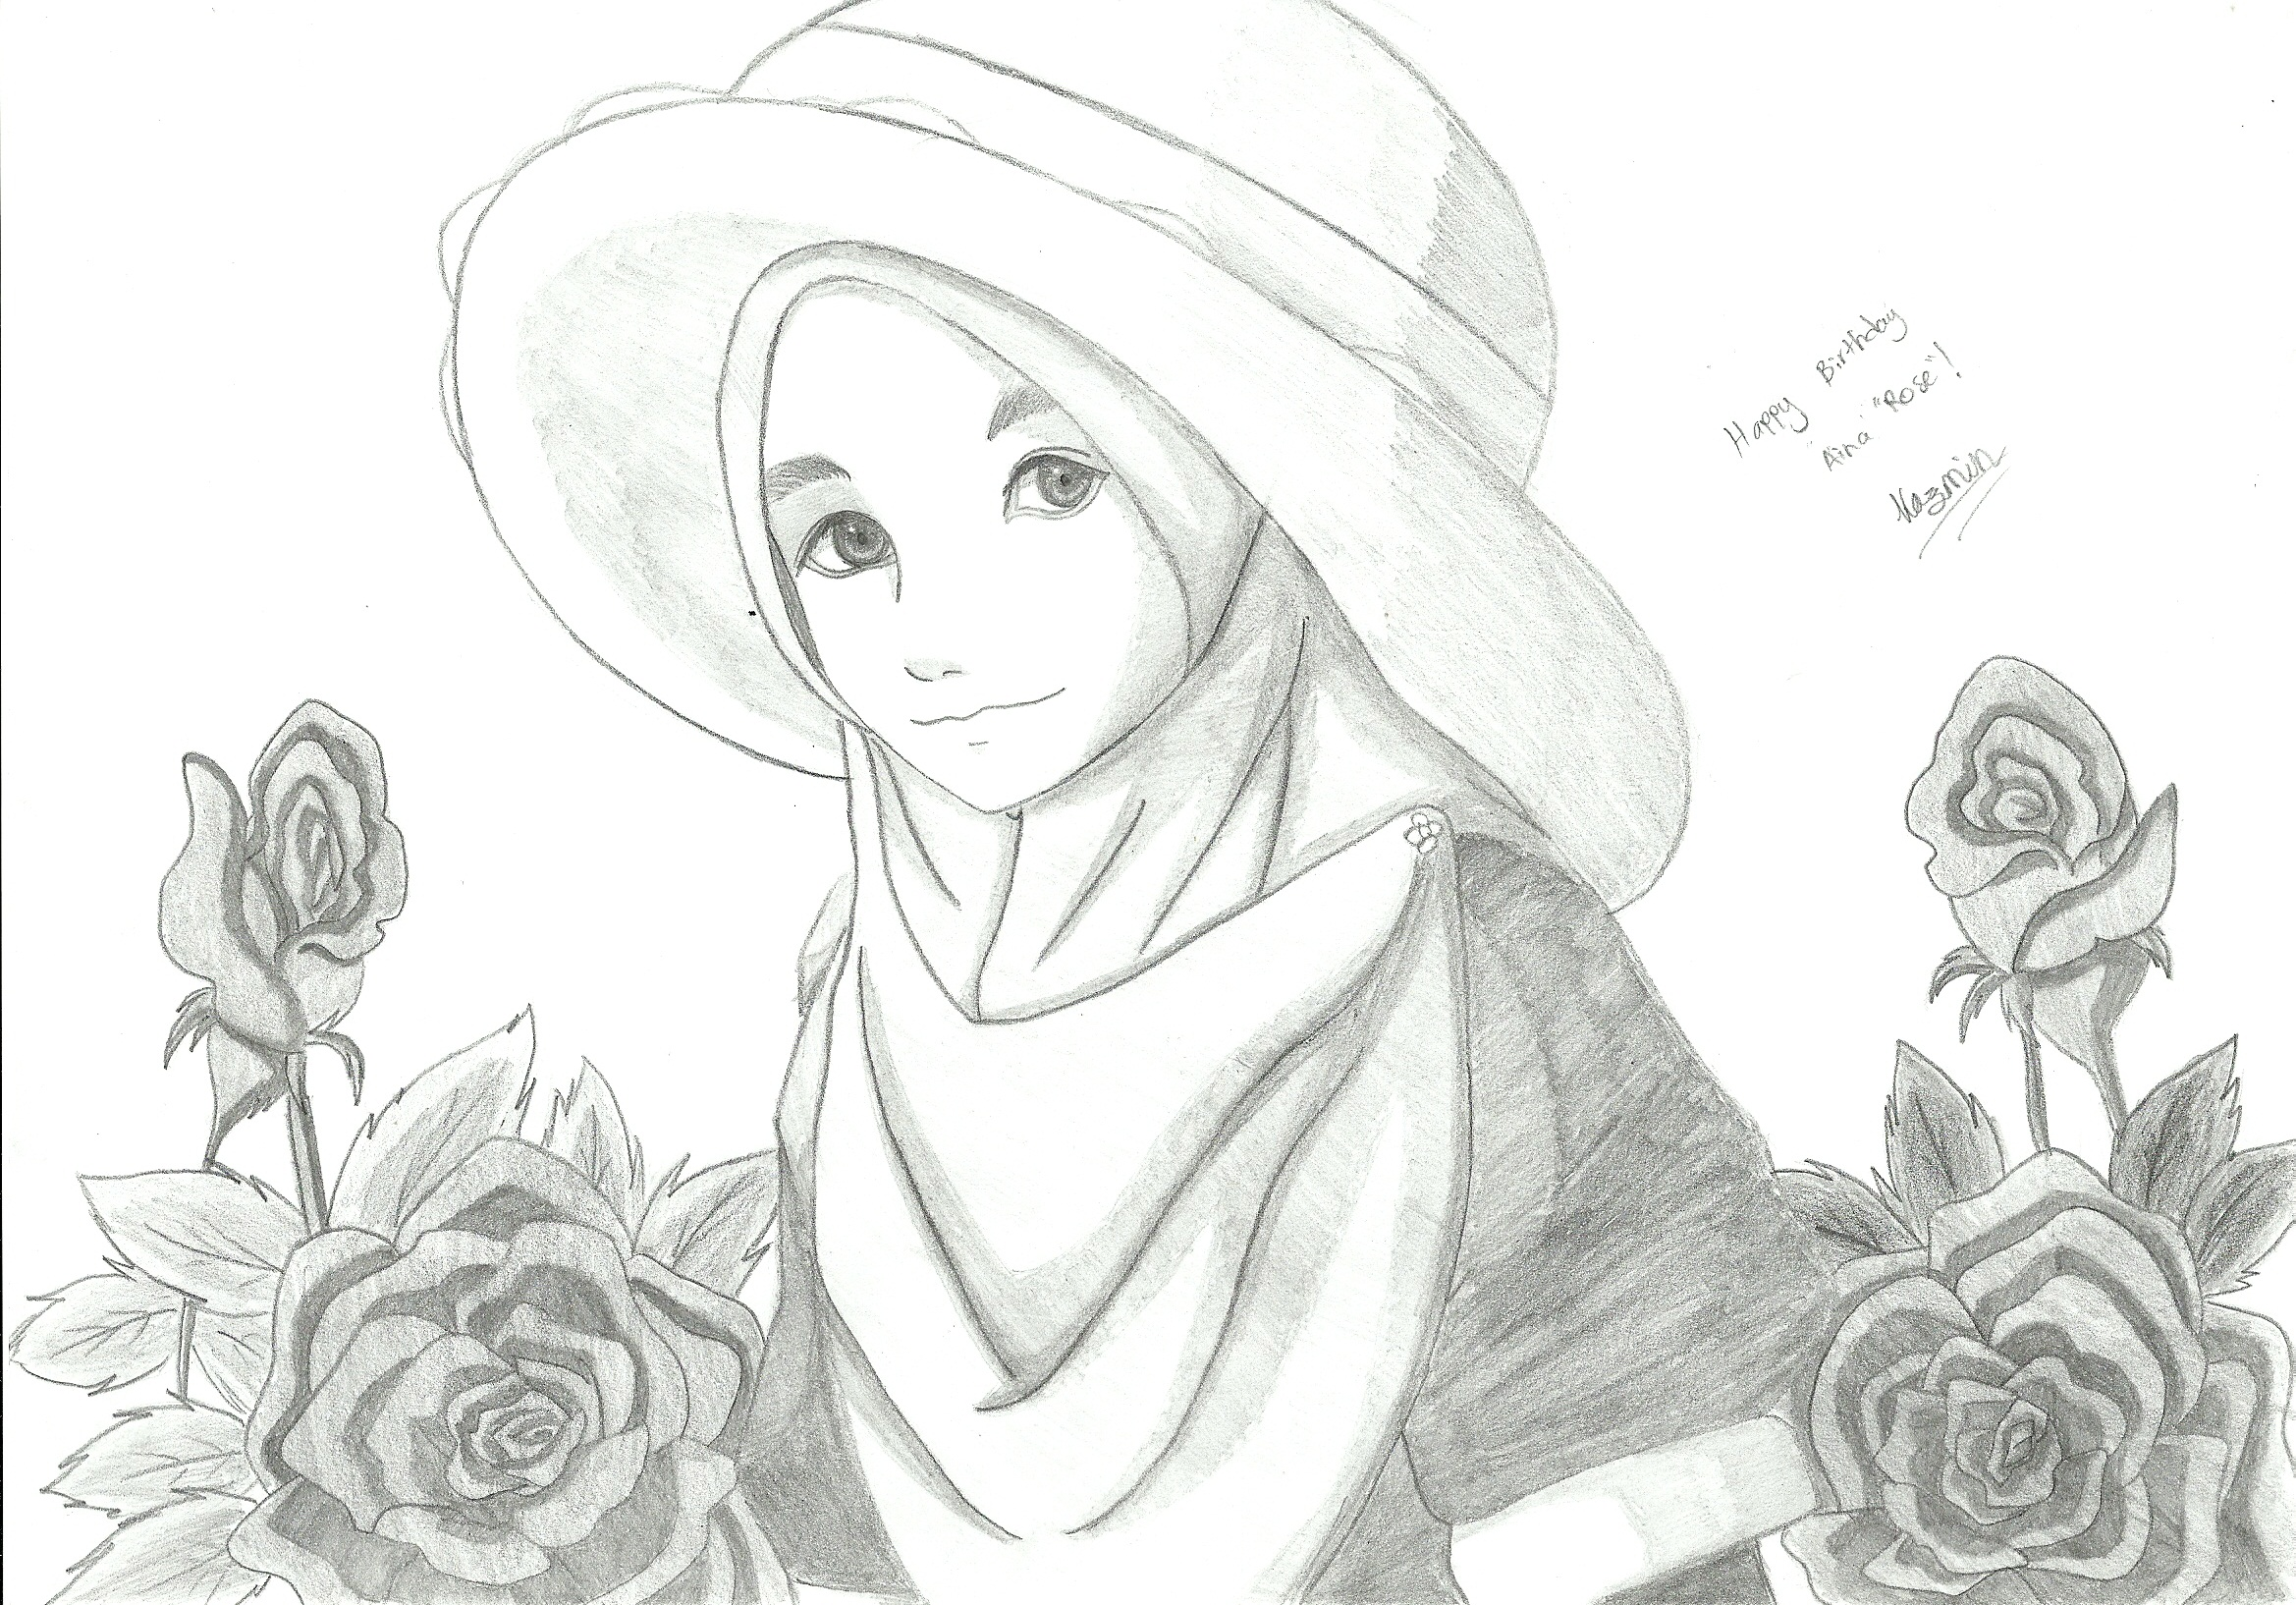 Hijab Anime Images In Pencil